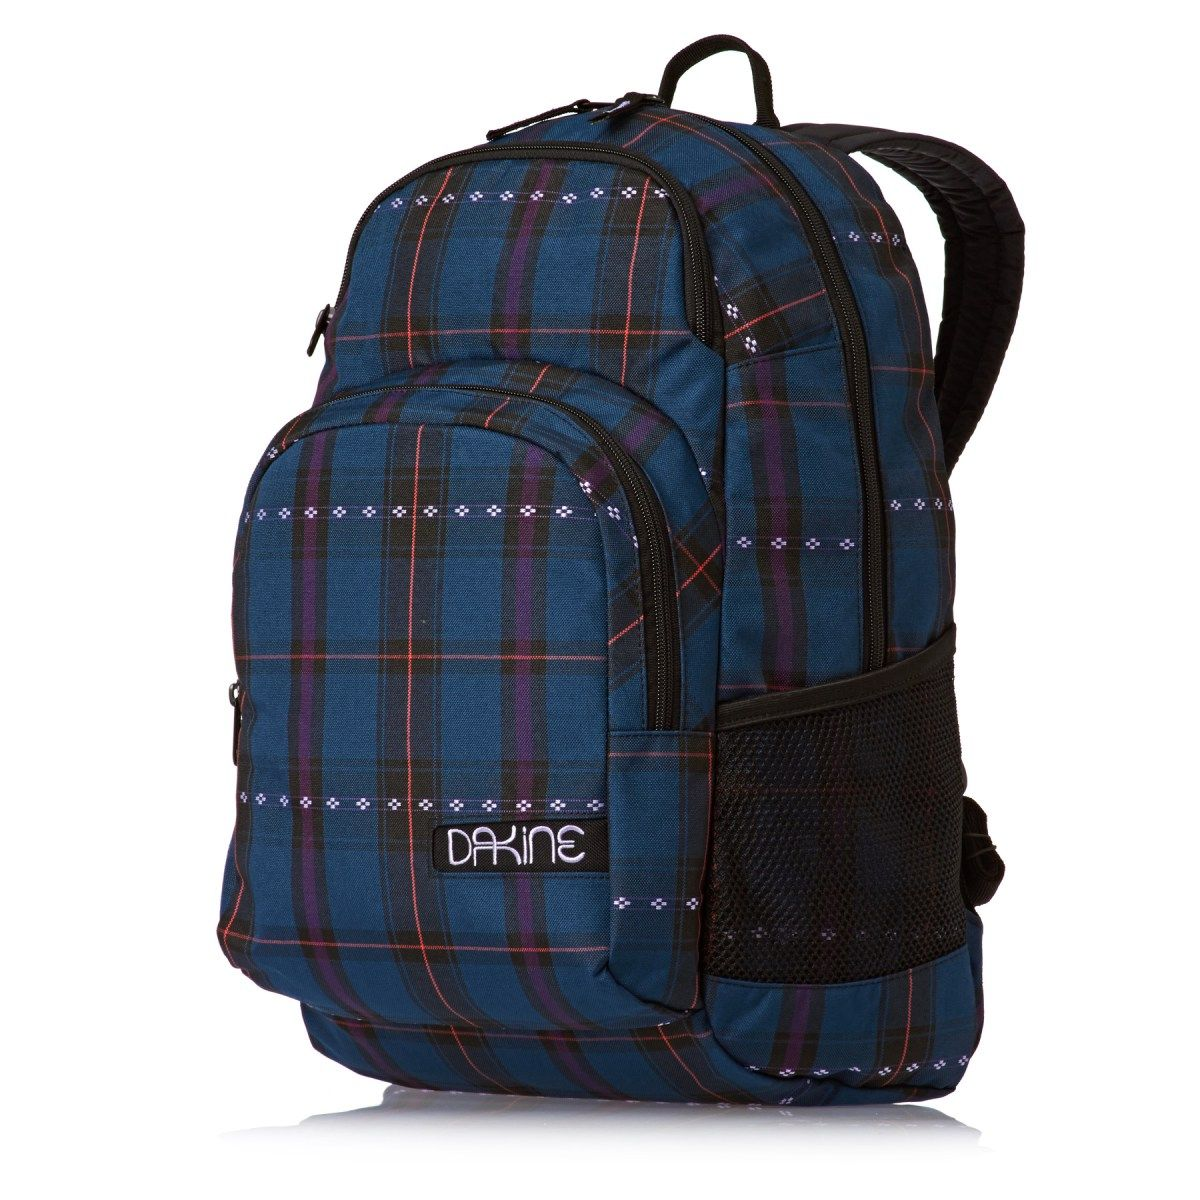 1bc3a623d64c Women s Dakine Backpacks - Dakine Hana Laptop Backpack - Suzie ...